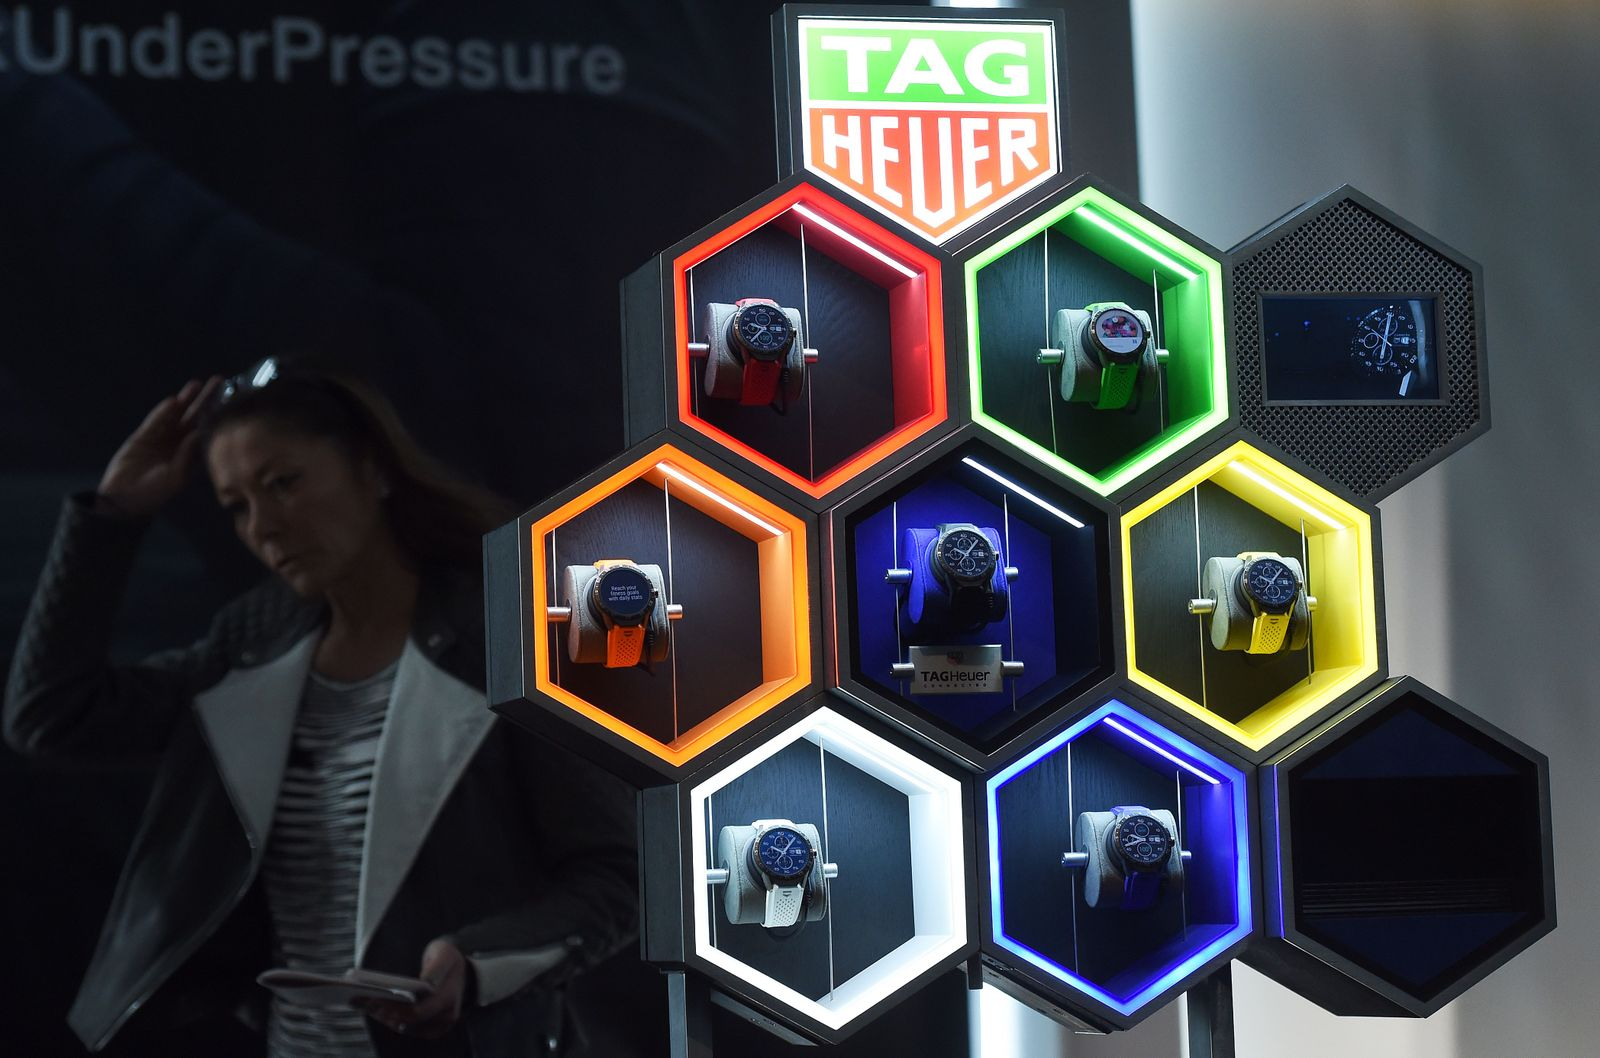 TAG Heuer to launch $1,500 smartwatch next week